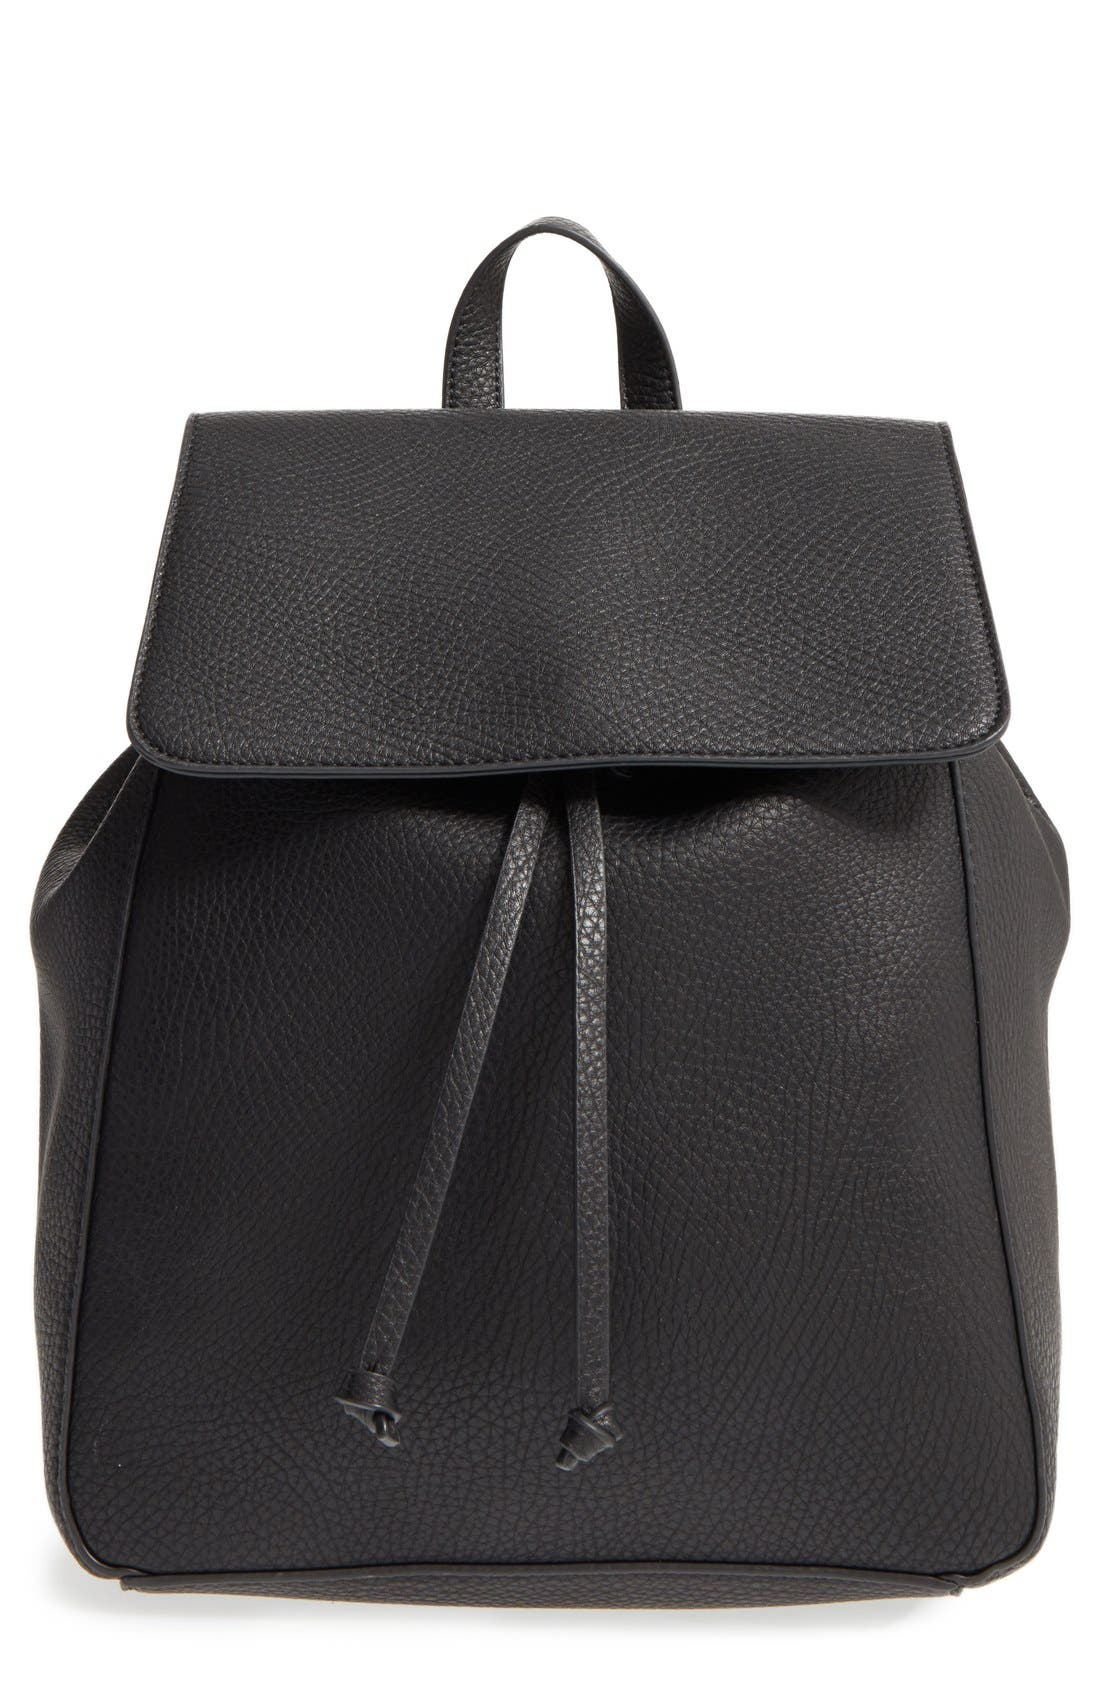 SOLE SOCIETY,                             'Iver' Faux Leather Drawstring Backpack,                             Main thumbnail 1, color,                             001